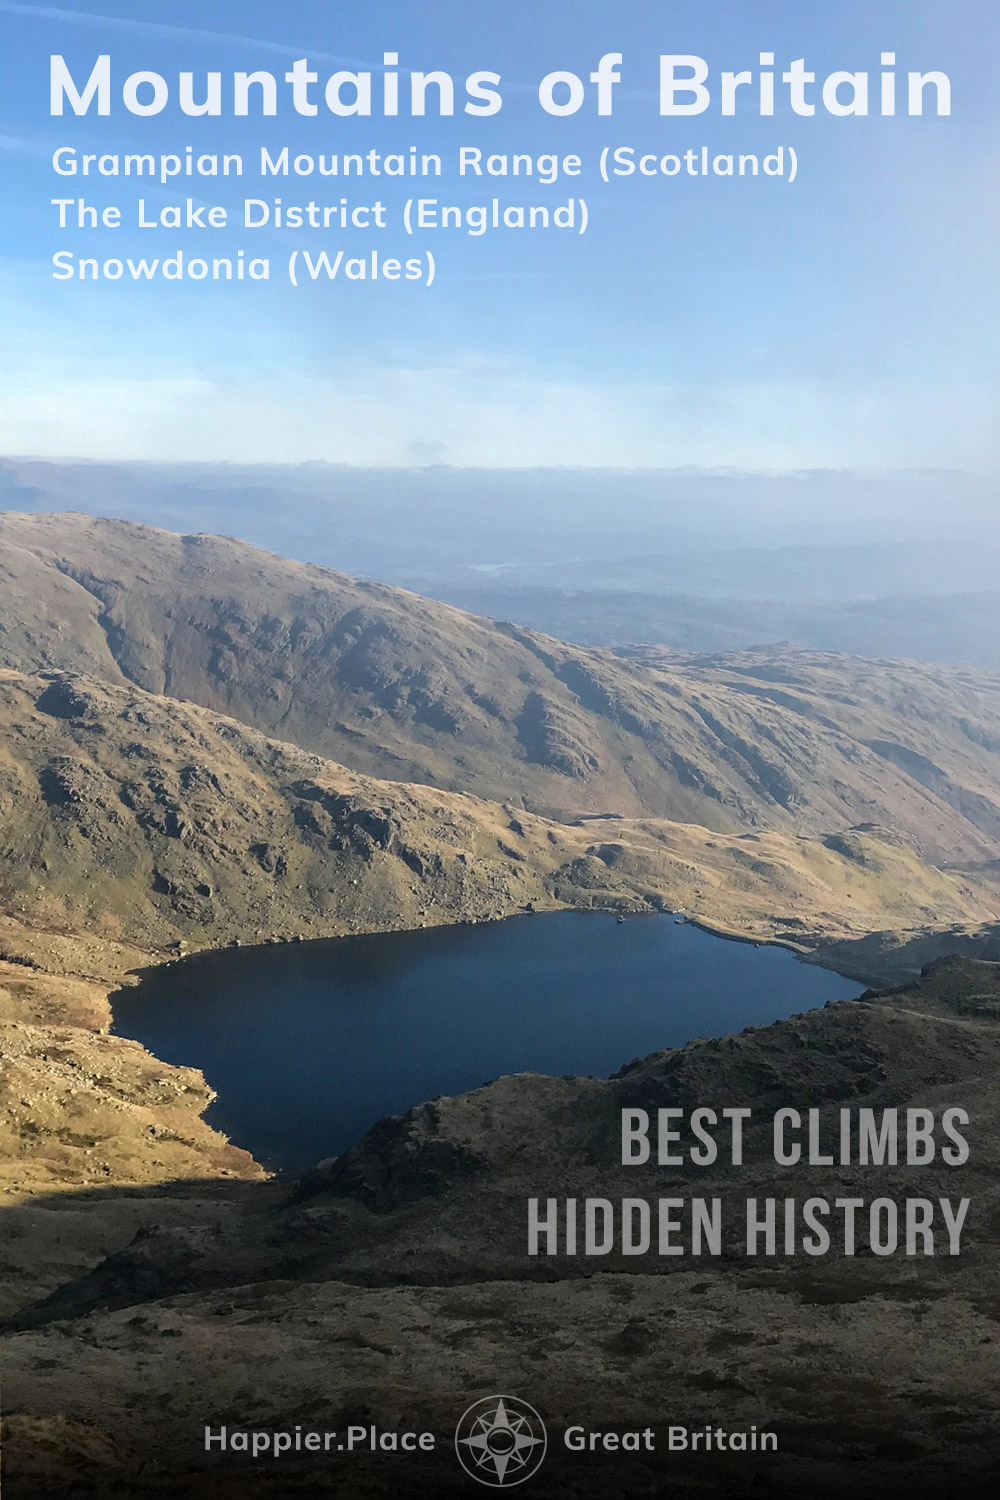 Scafell Pike view, Wasdale, Mountains of Britain, Hidden History and Best Climbs, Grampian Mountain Range in Scotland, The Lake District in England, Snowdonia in Wales, HappierPlace